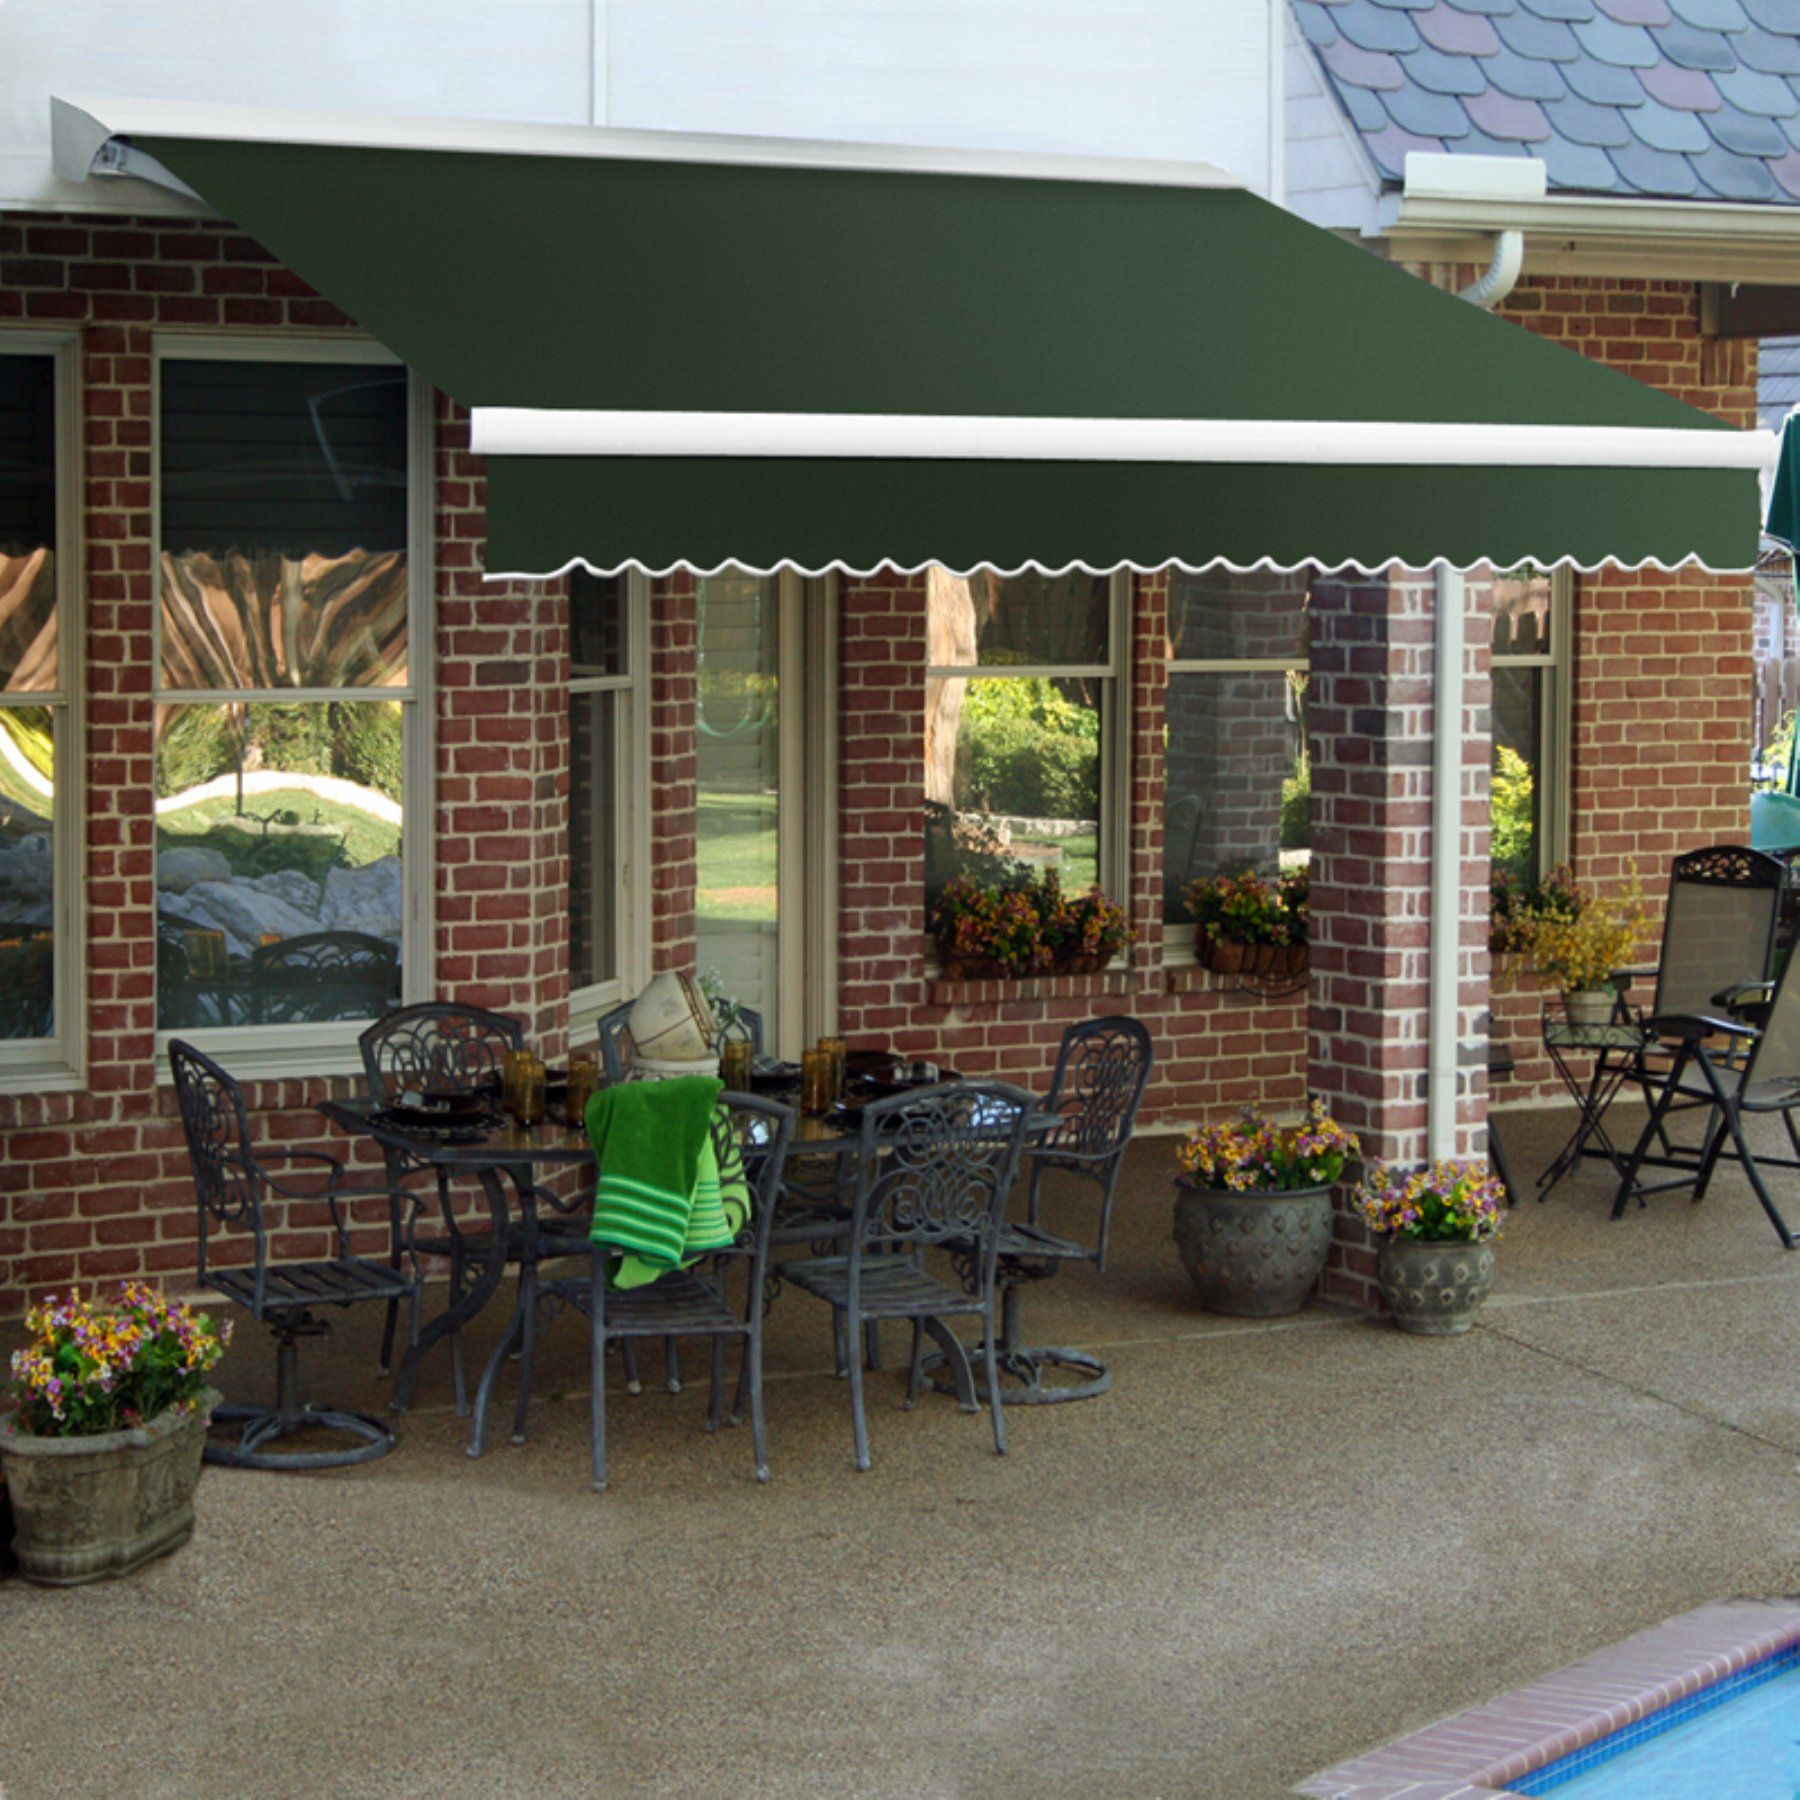 Awntech Destin 10 Ft Motorized Retractable Awning Dtl10 A Retractable Awning Patio Awning Patio